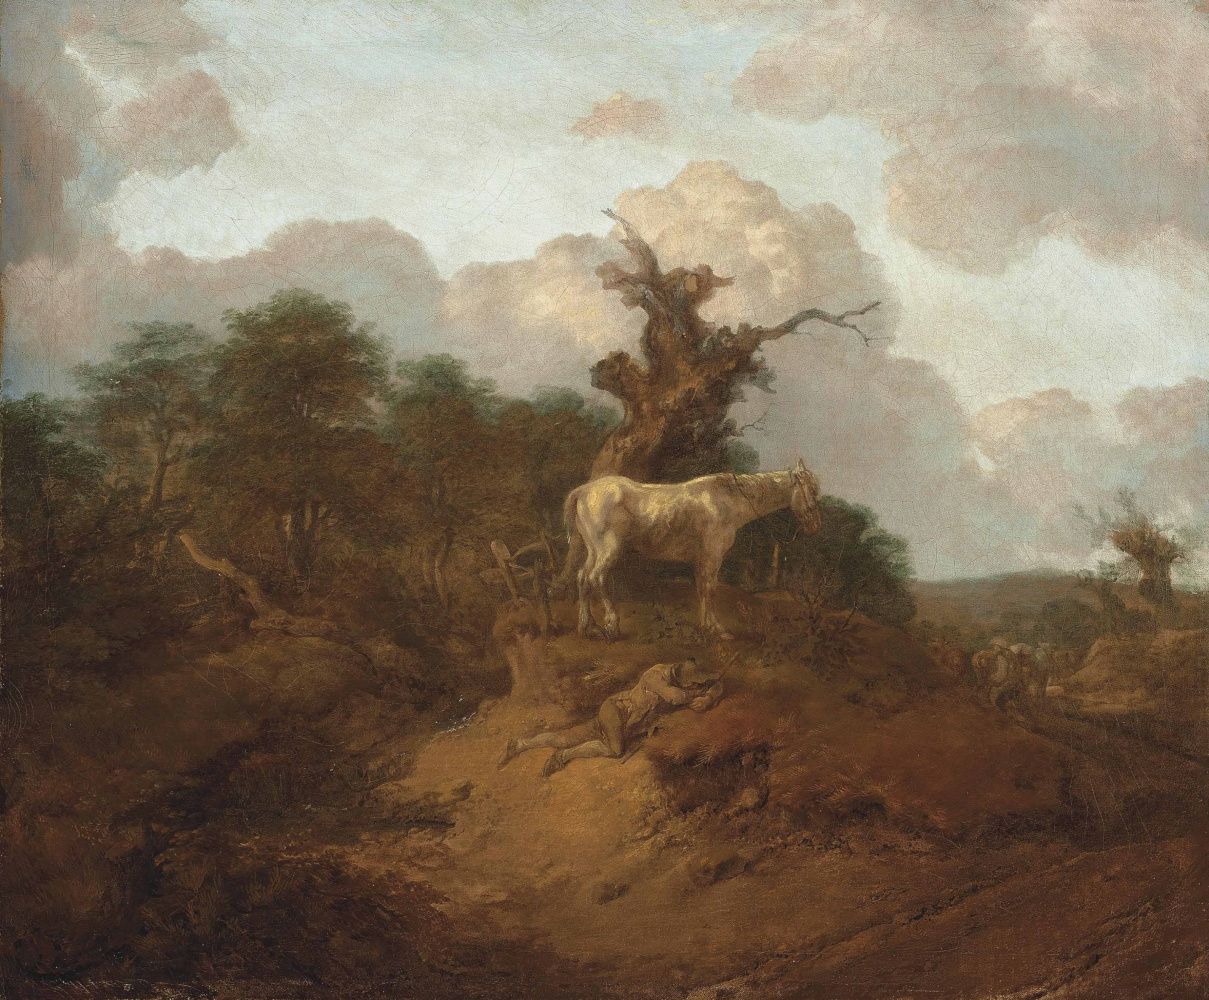 Thomas Gainsborough. Landscape with peasant and horses